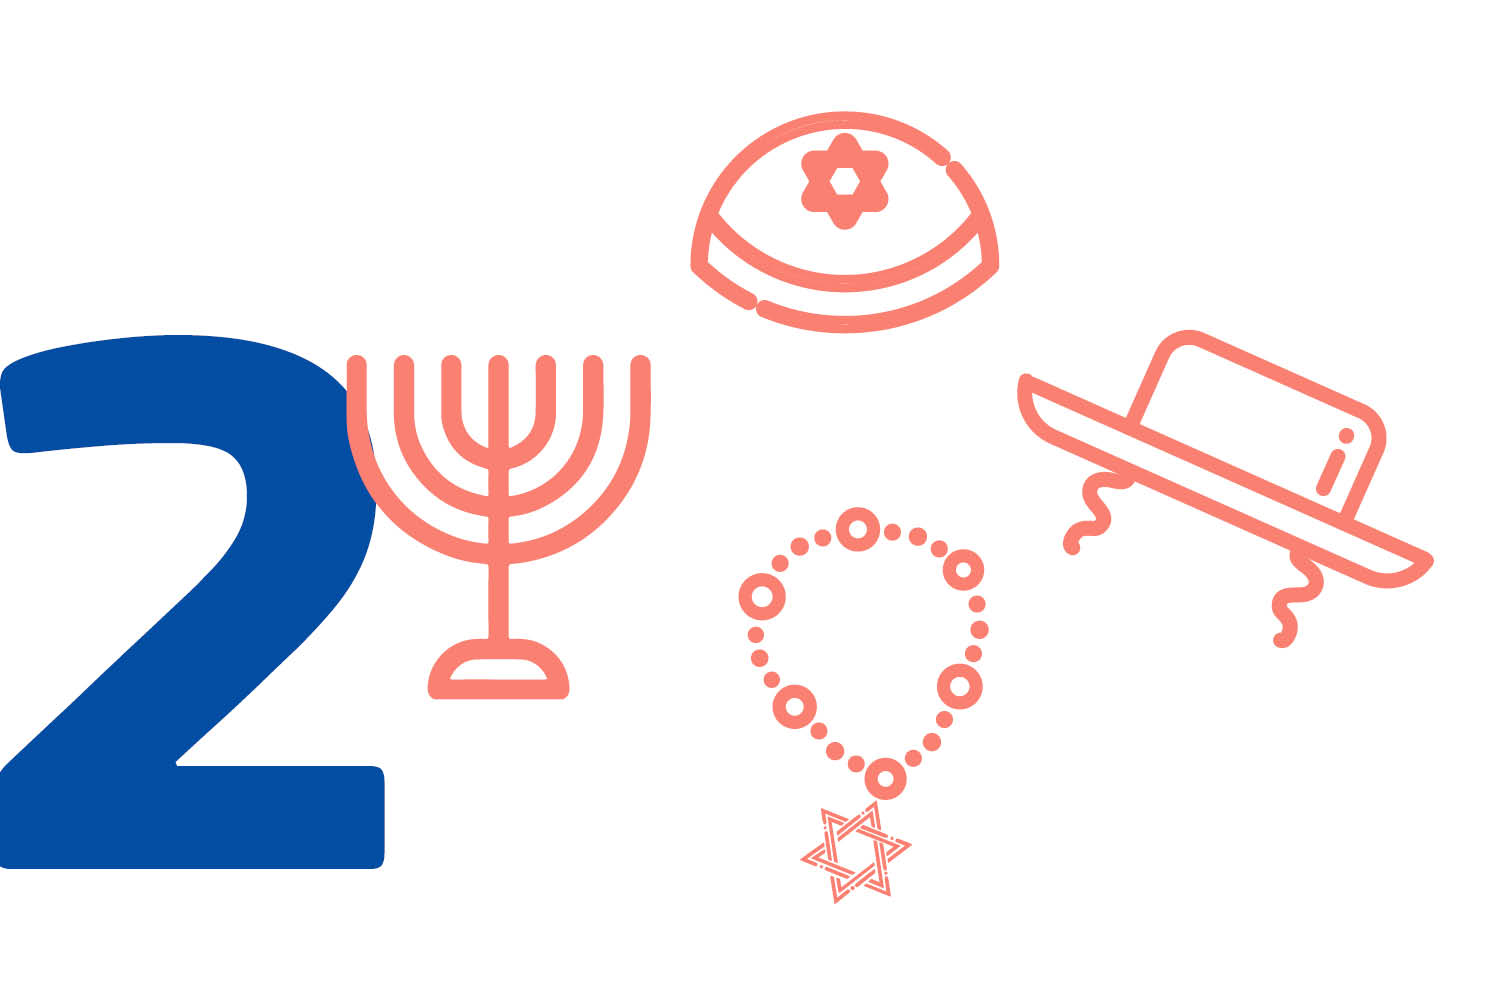 For a European society aware of Jewish life, culture and history, past and present, and where Jews feel safe.